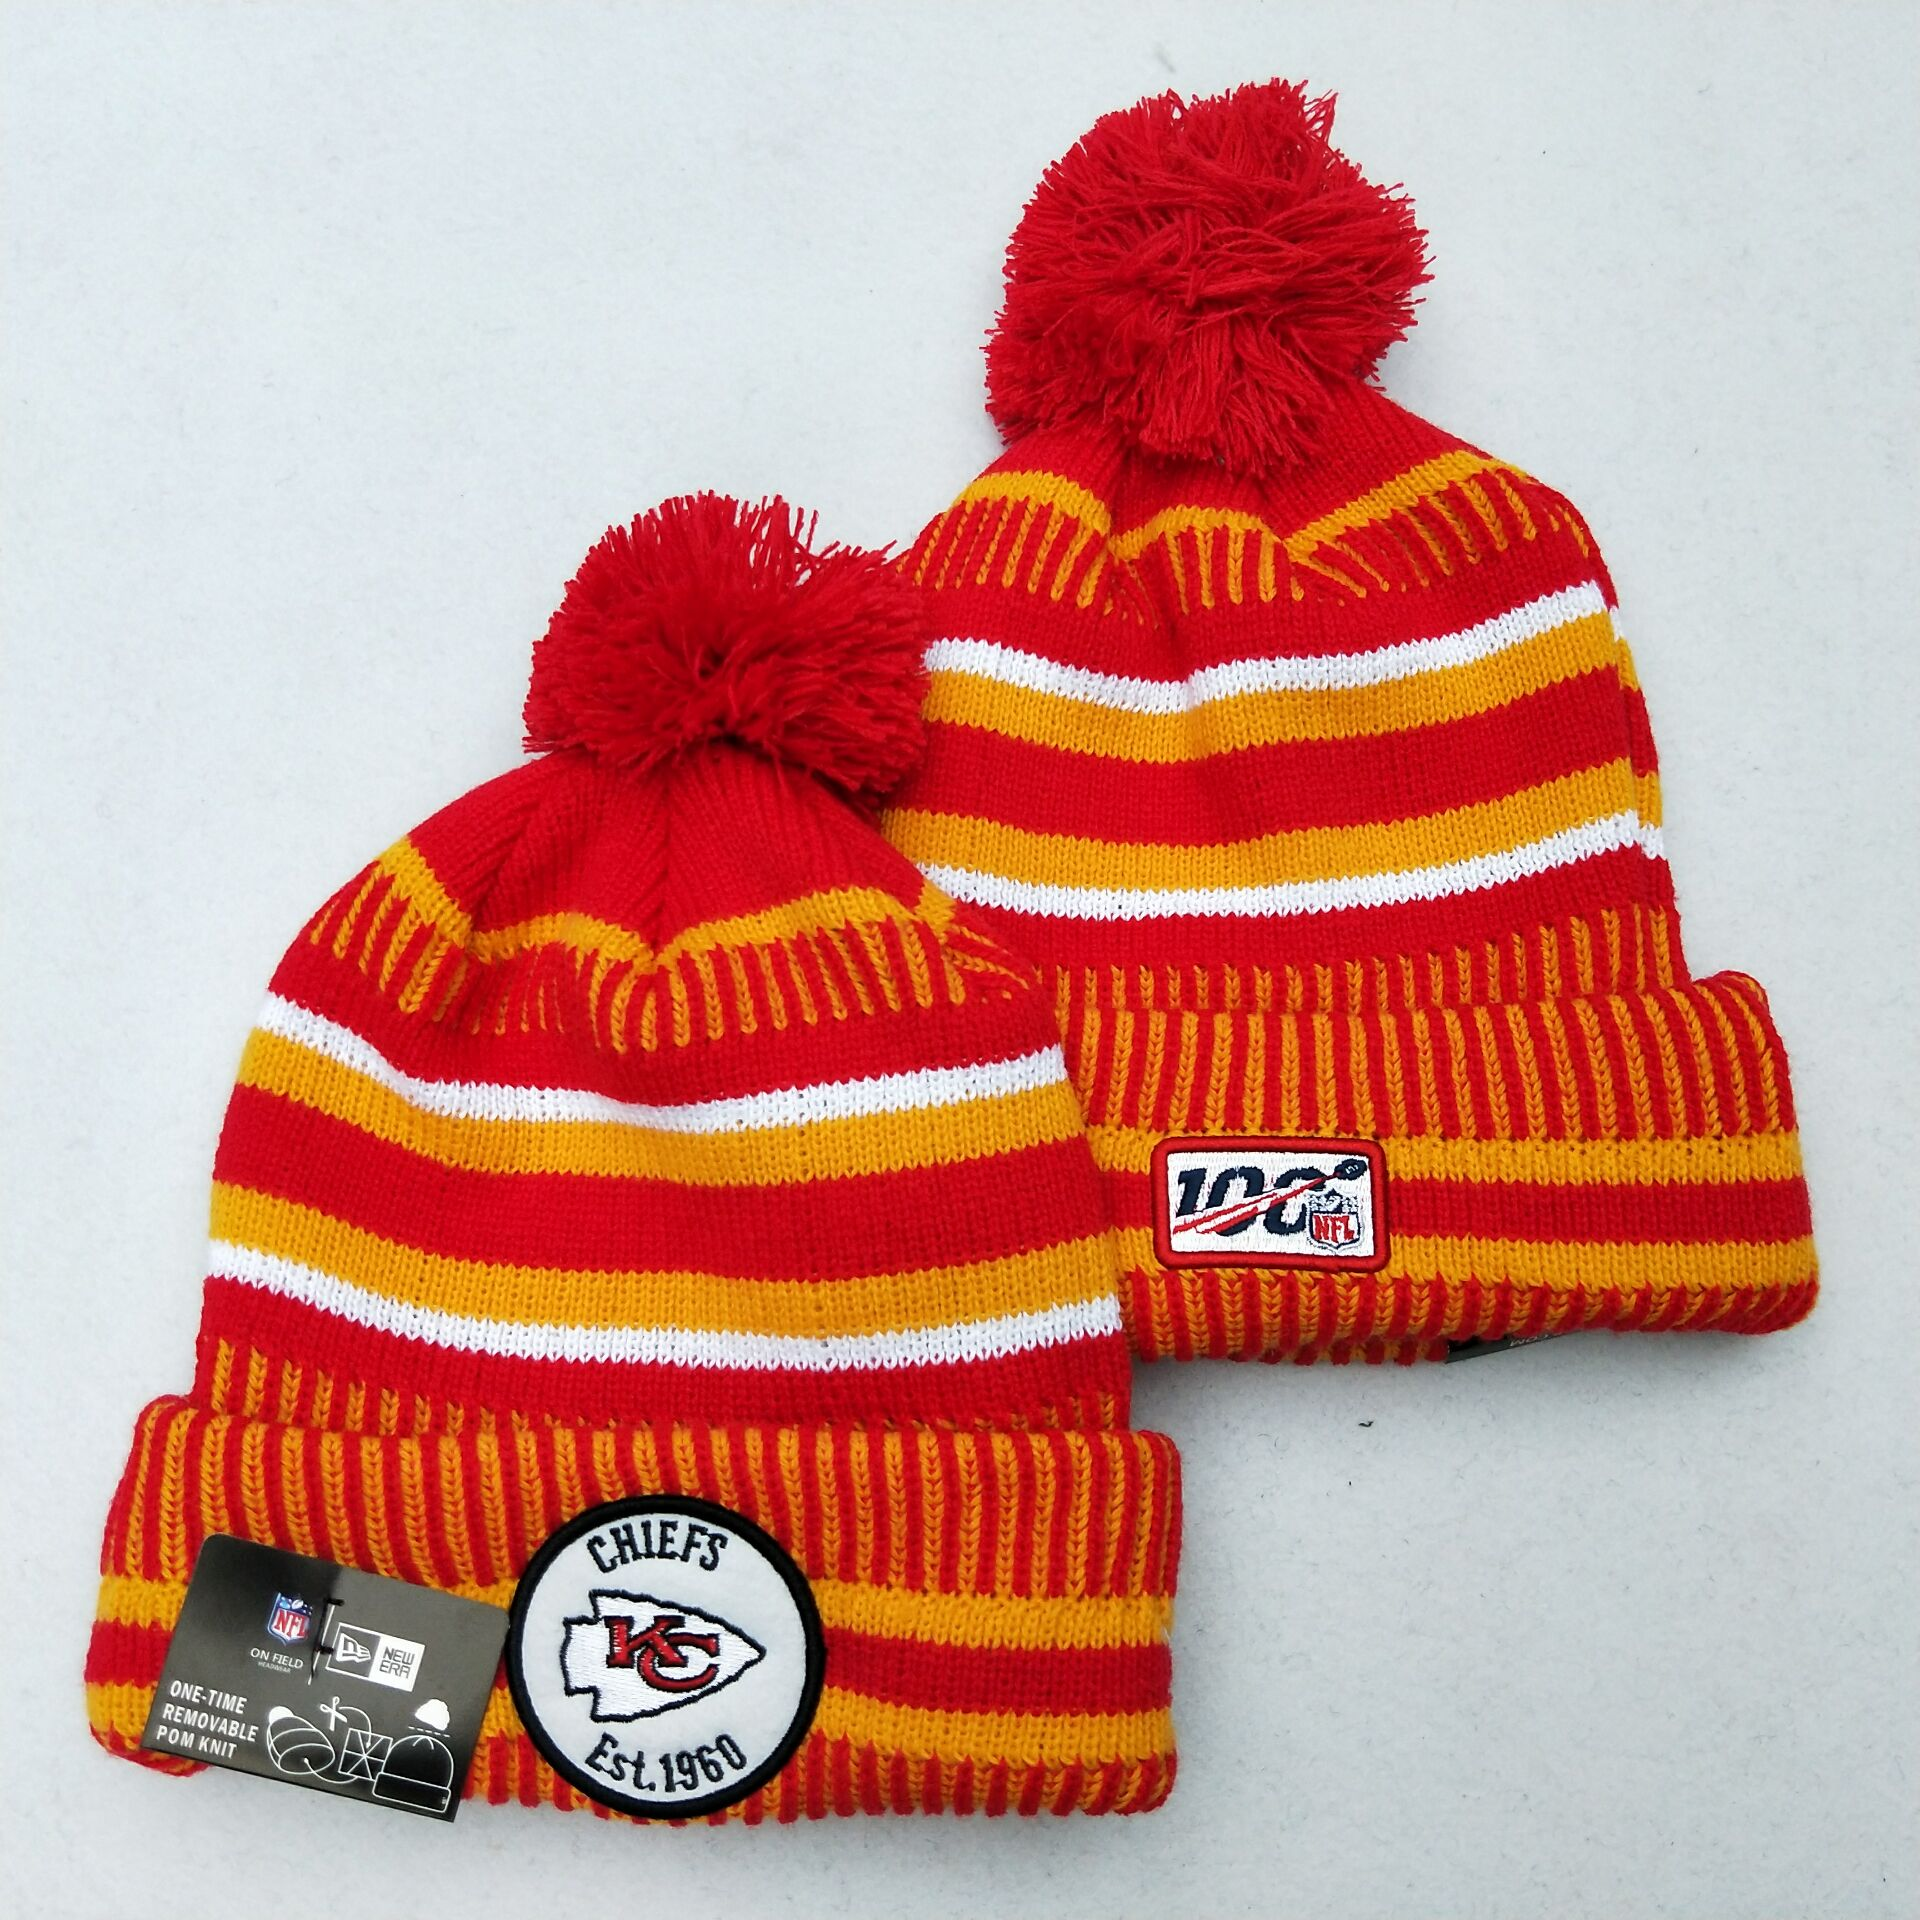 Chiefs Team Logo Red 100th Season Pom Knit Hat YD